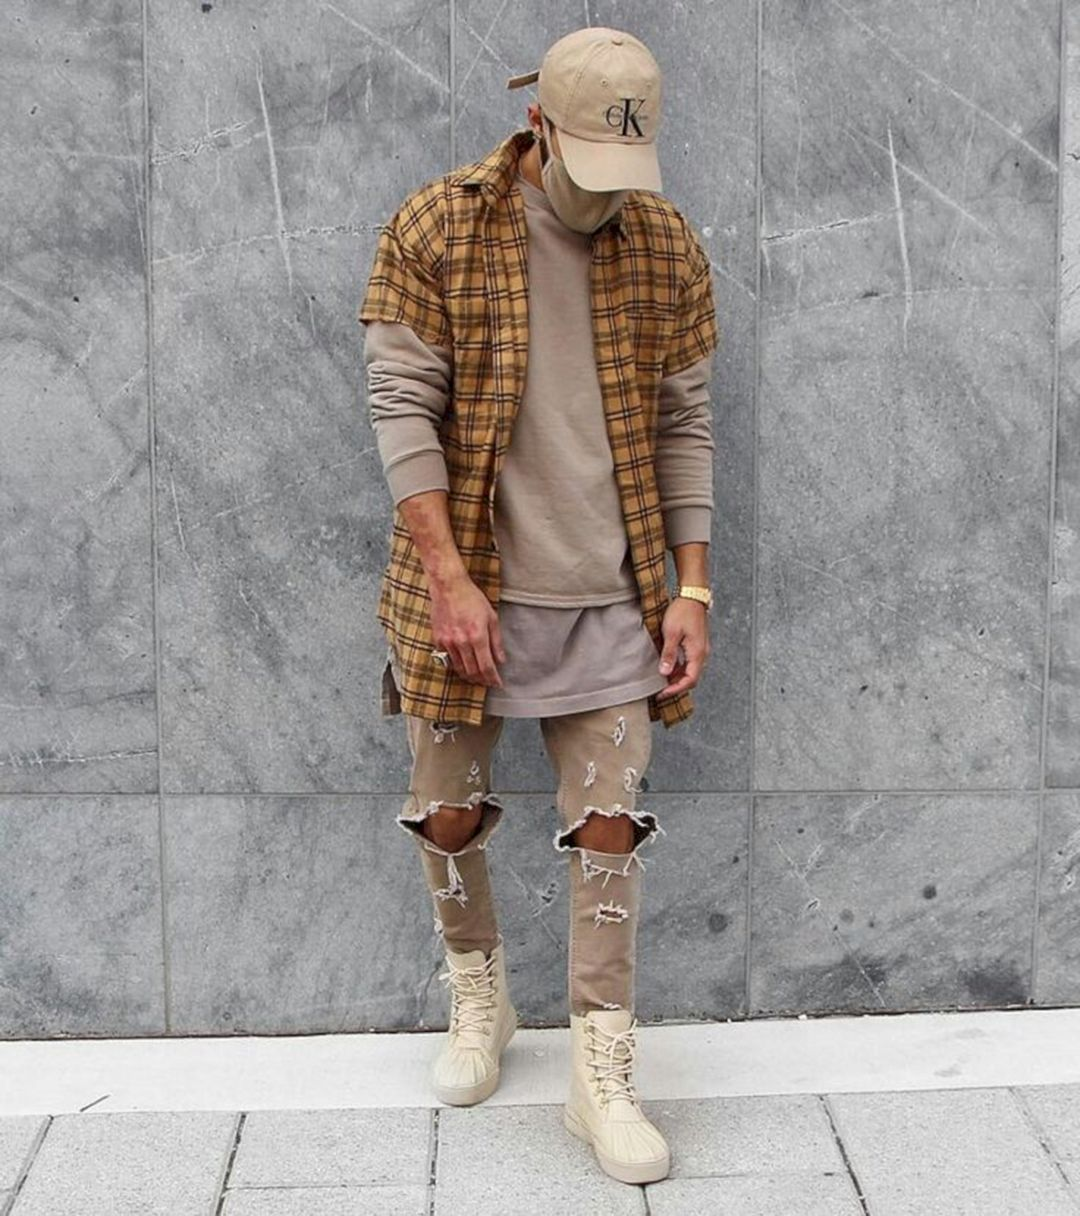 15 Gorgeous Mens Streetwear Ideas That Will Make You Look Handsome #mensfashion